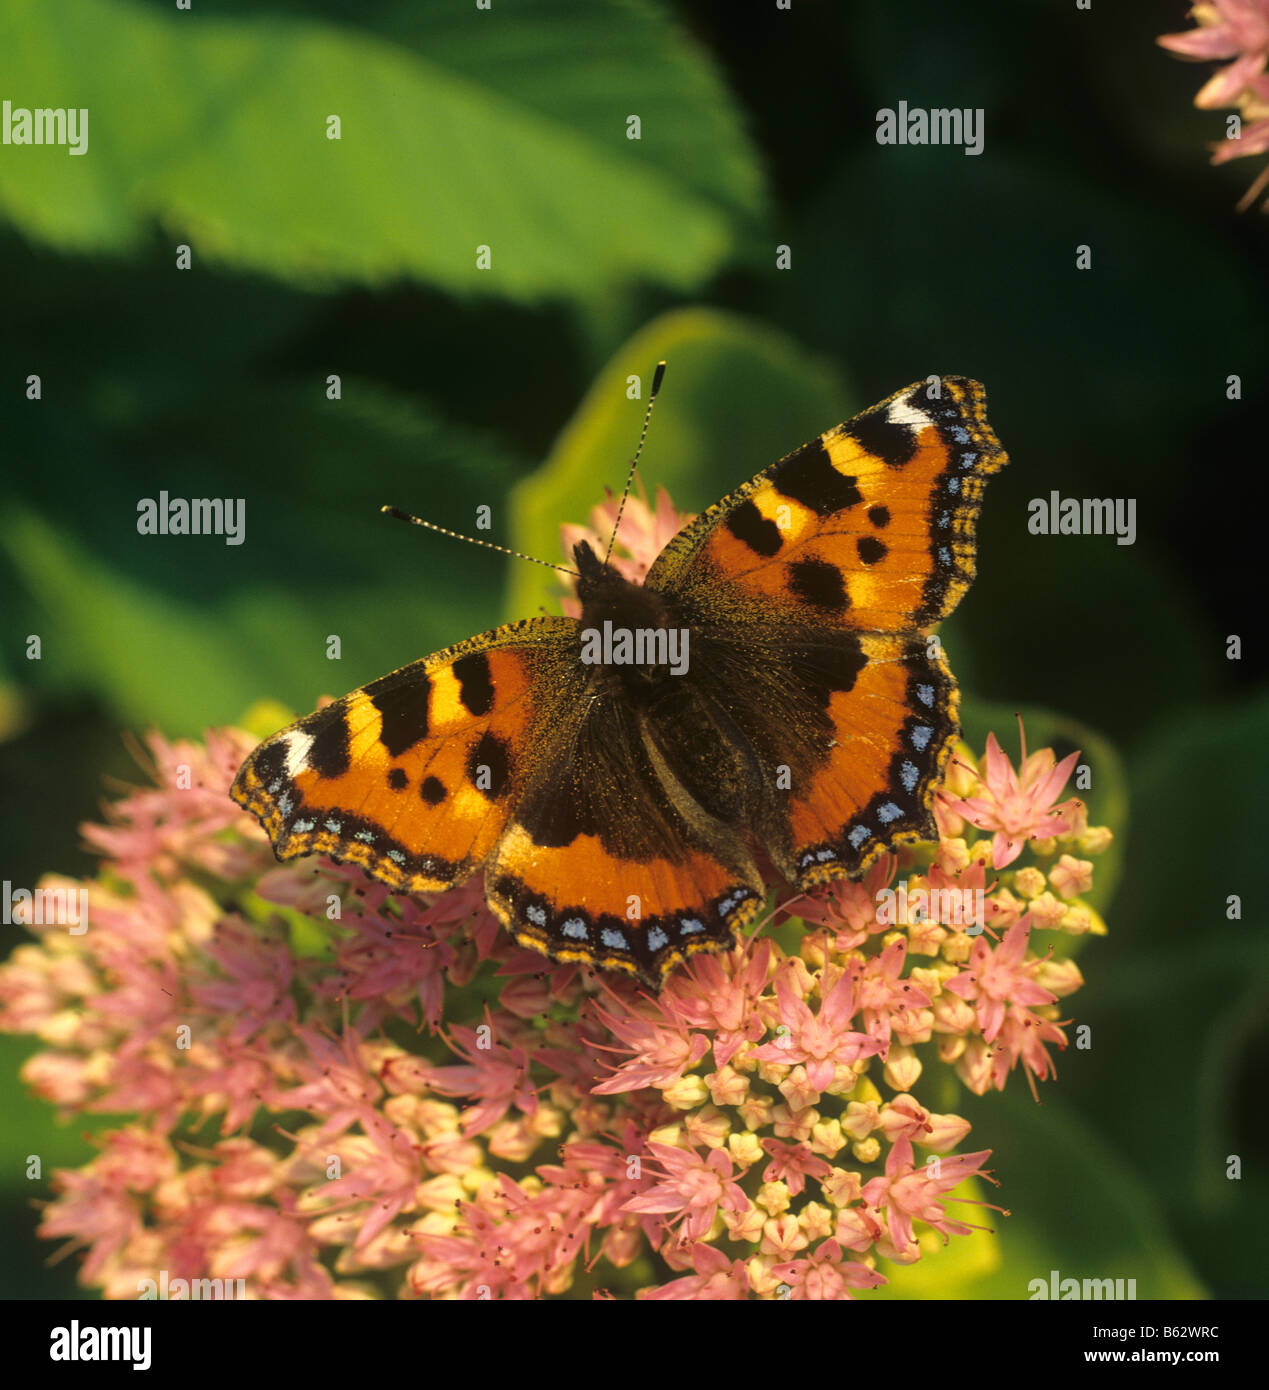 Small tortoiseshell butterfly Aglais urticae on Sedum spectabile flower in late afternoon light - Stock Image